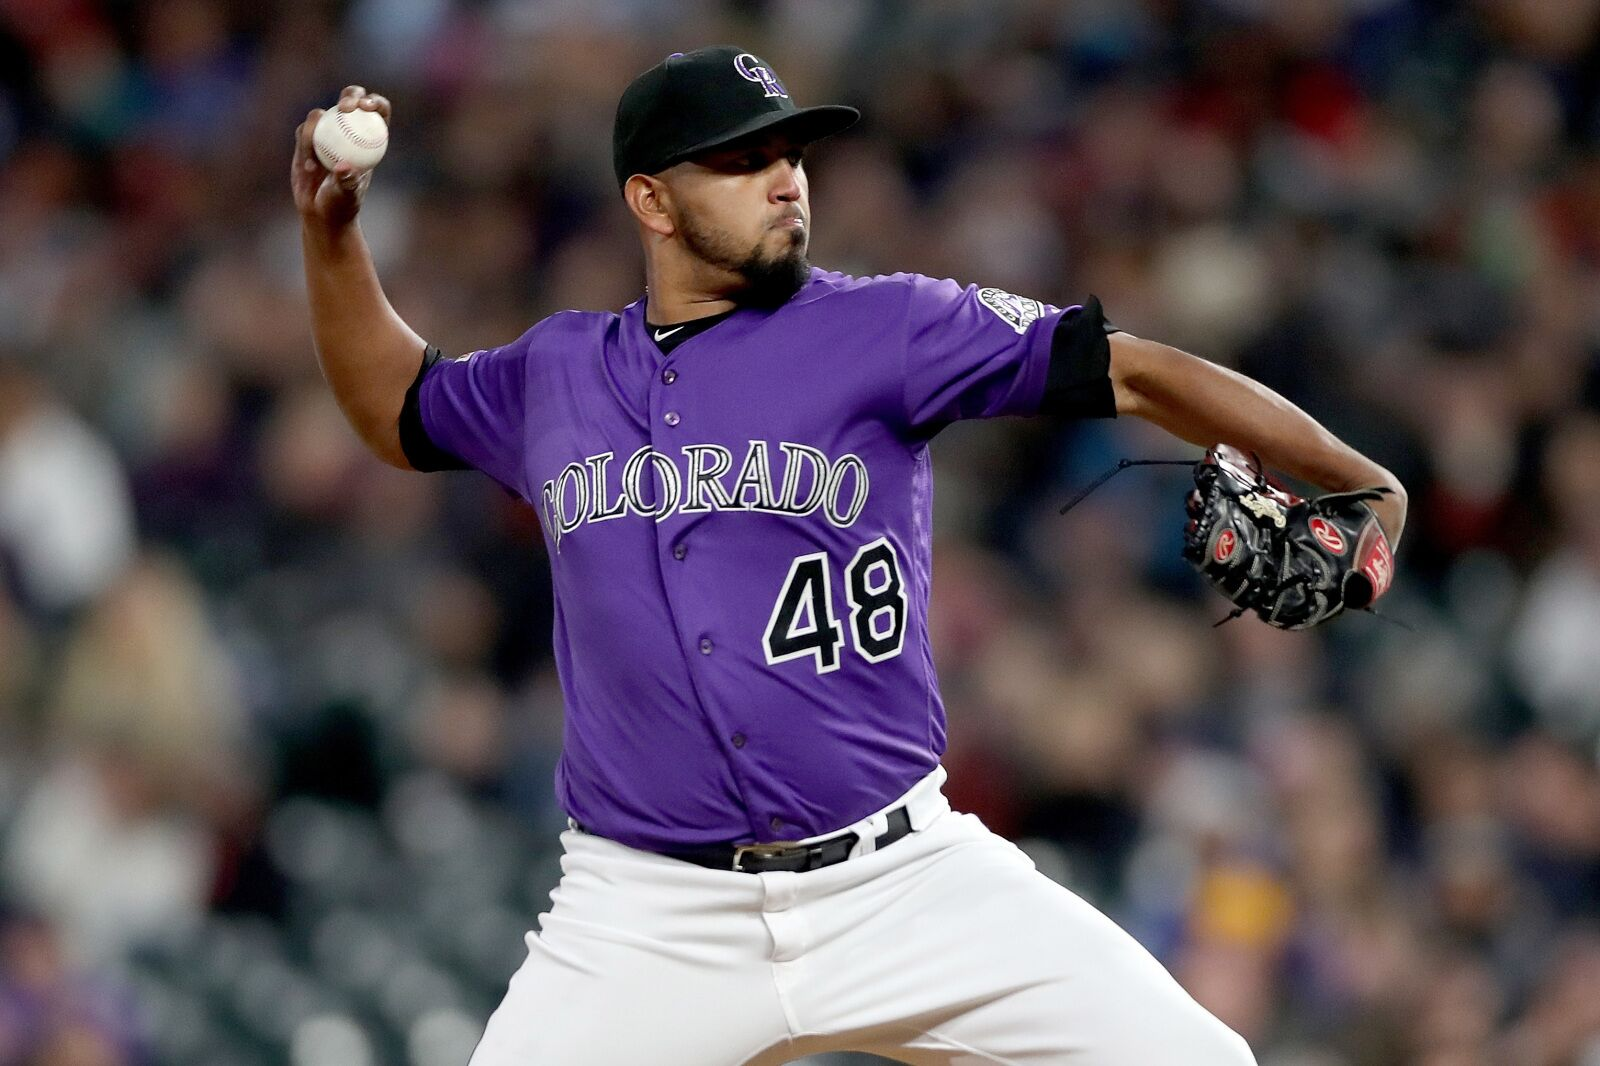 Colorado Rockies The Next Pitch For German Marquez To Conquer